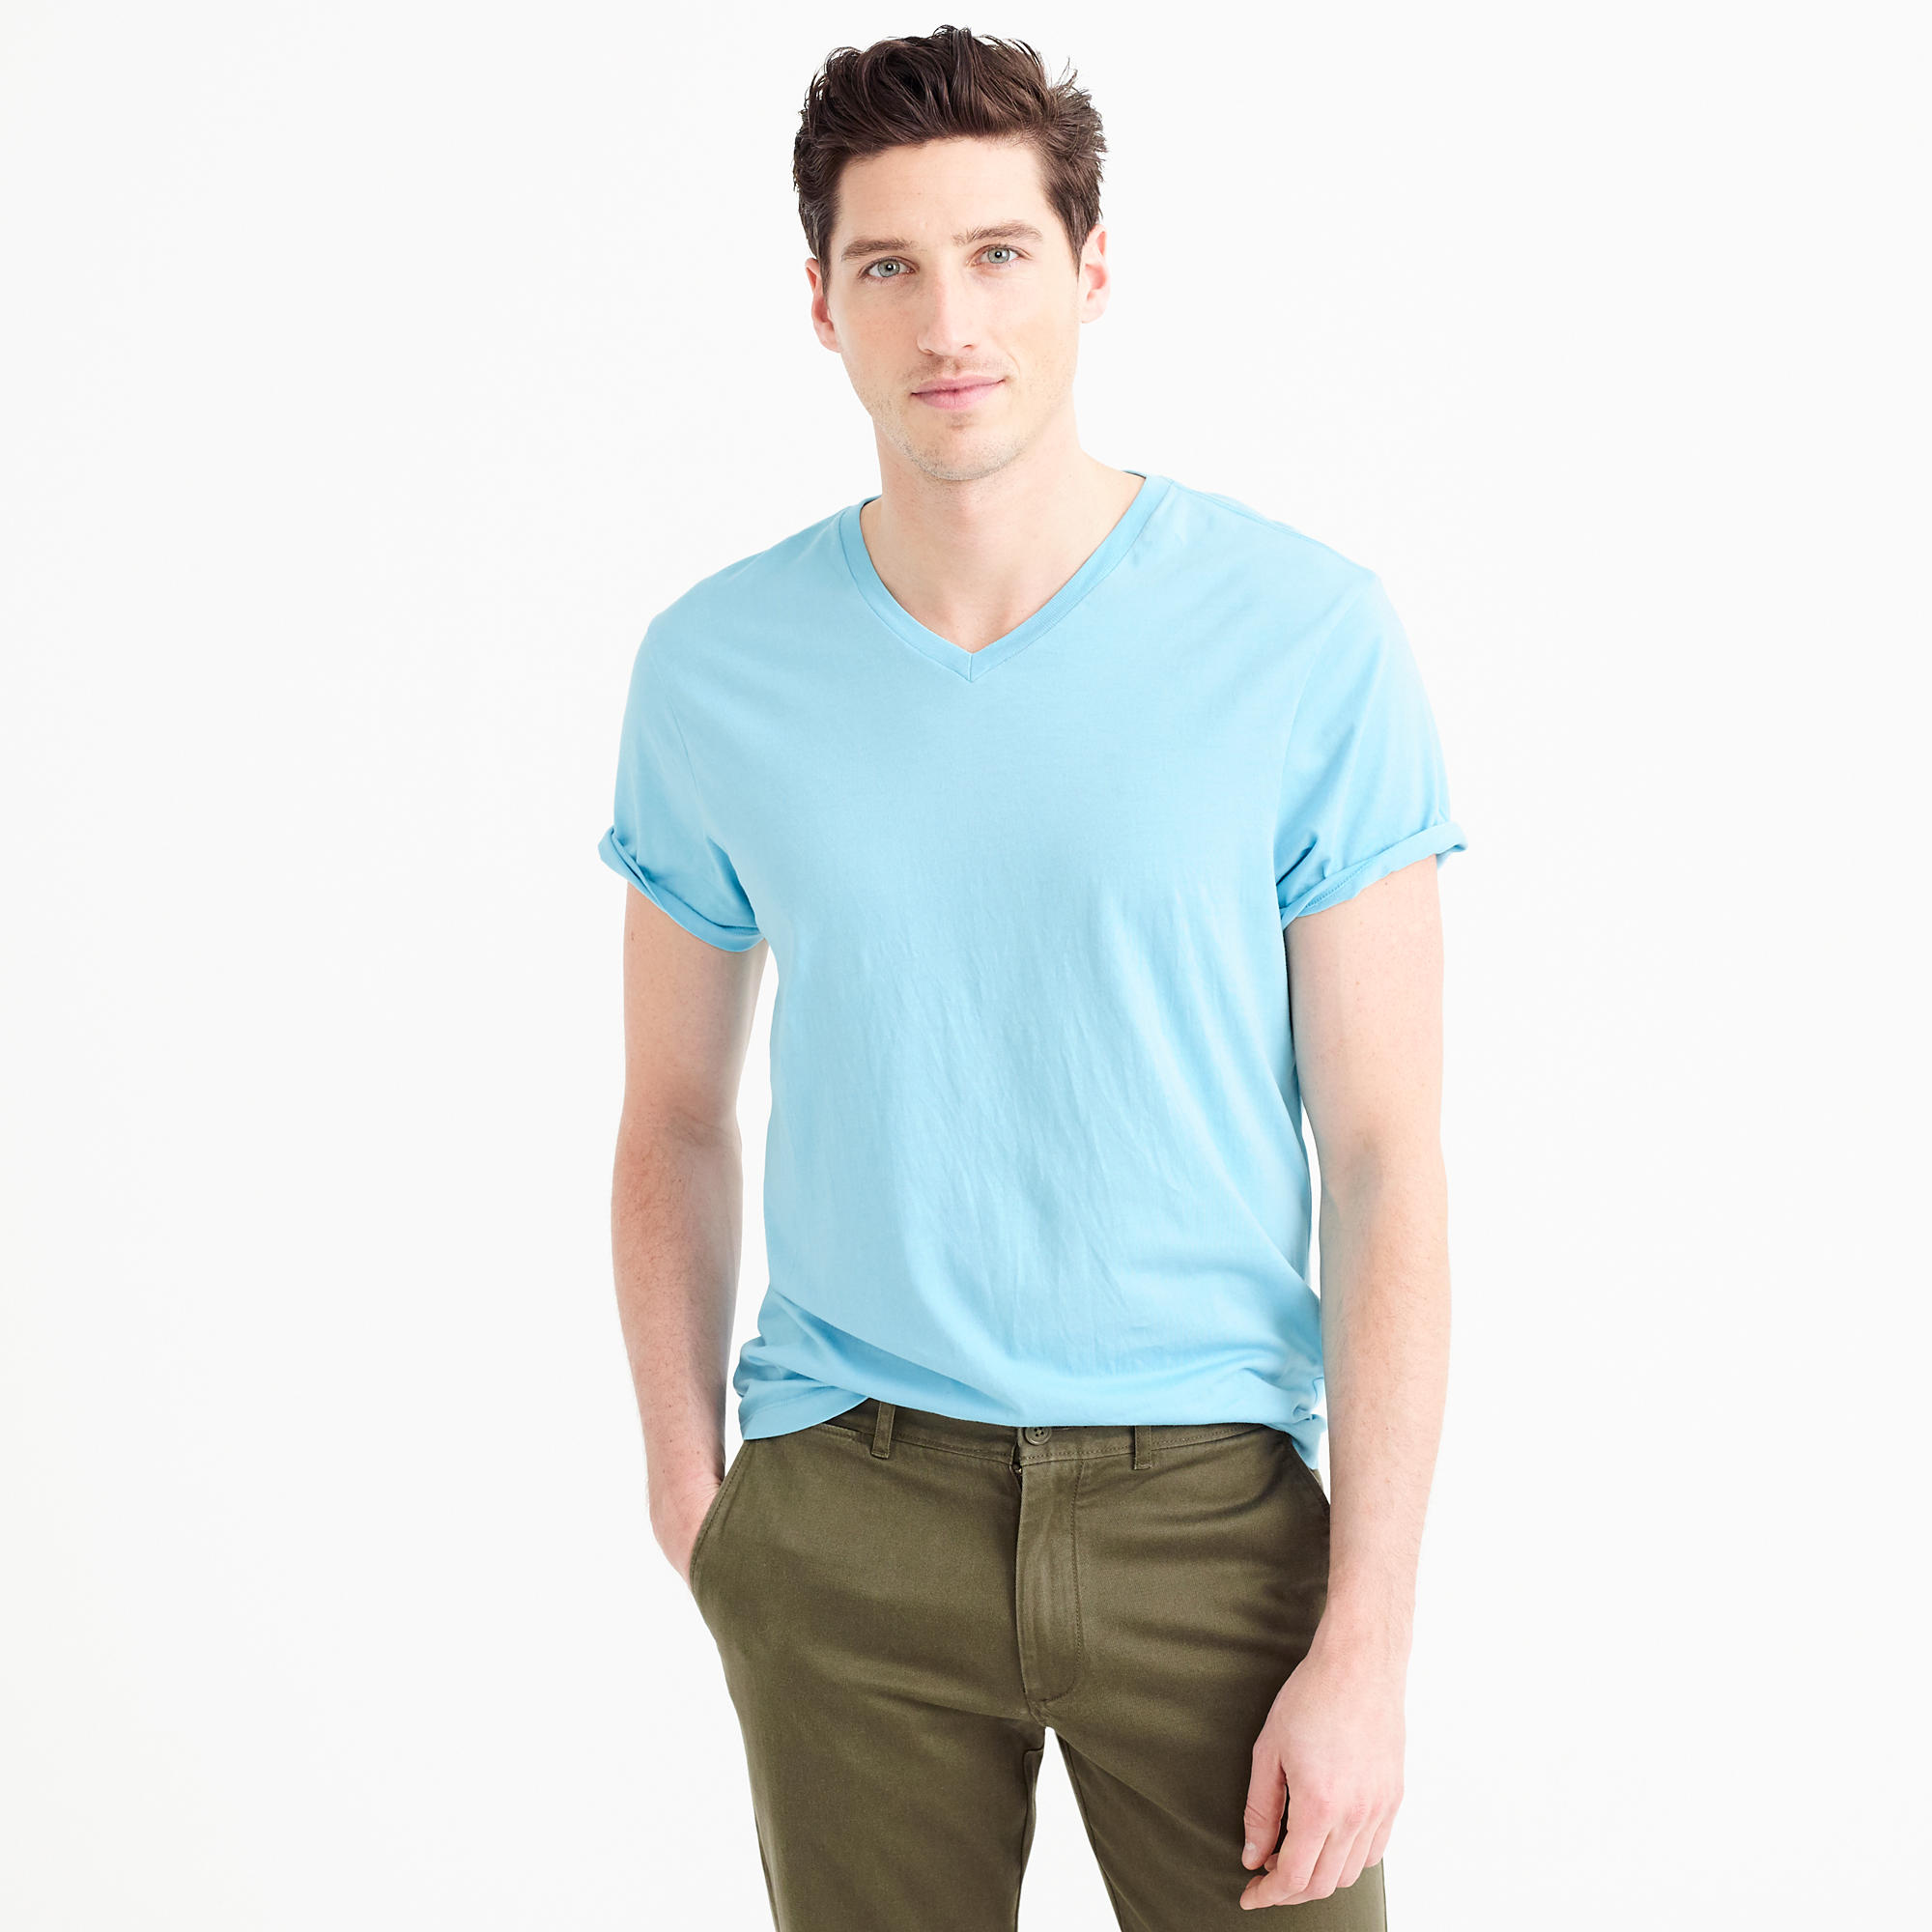 Garment-Dyed T-Shirt : Men's Tees | J.Crew